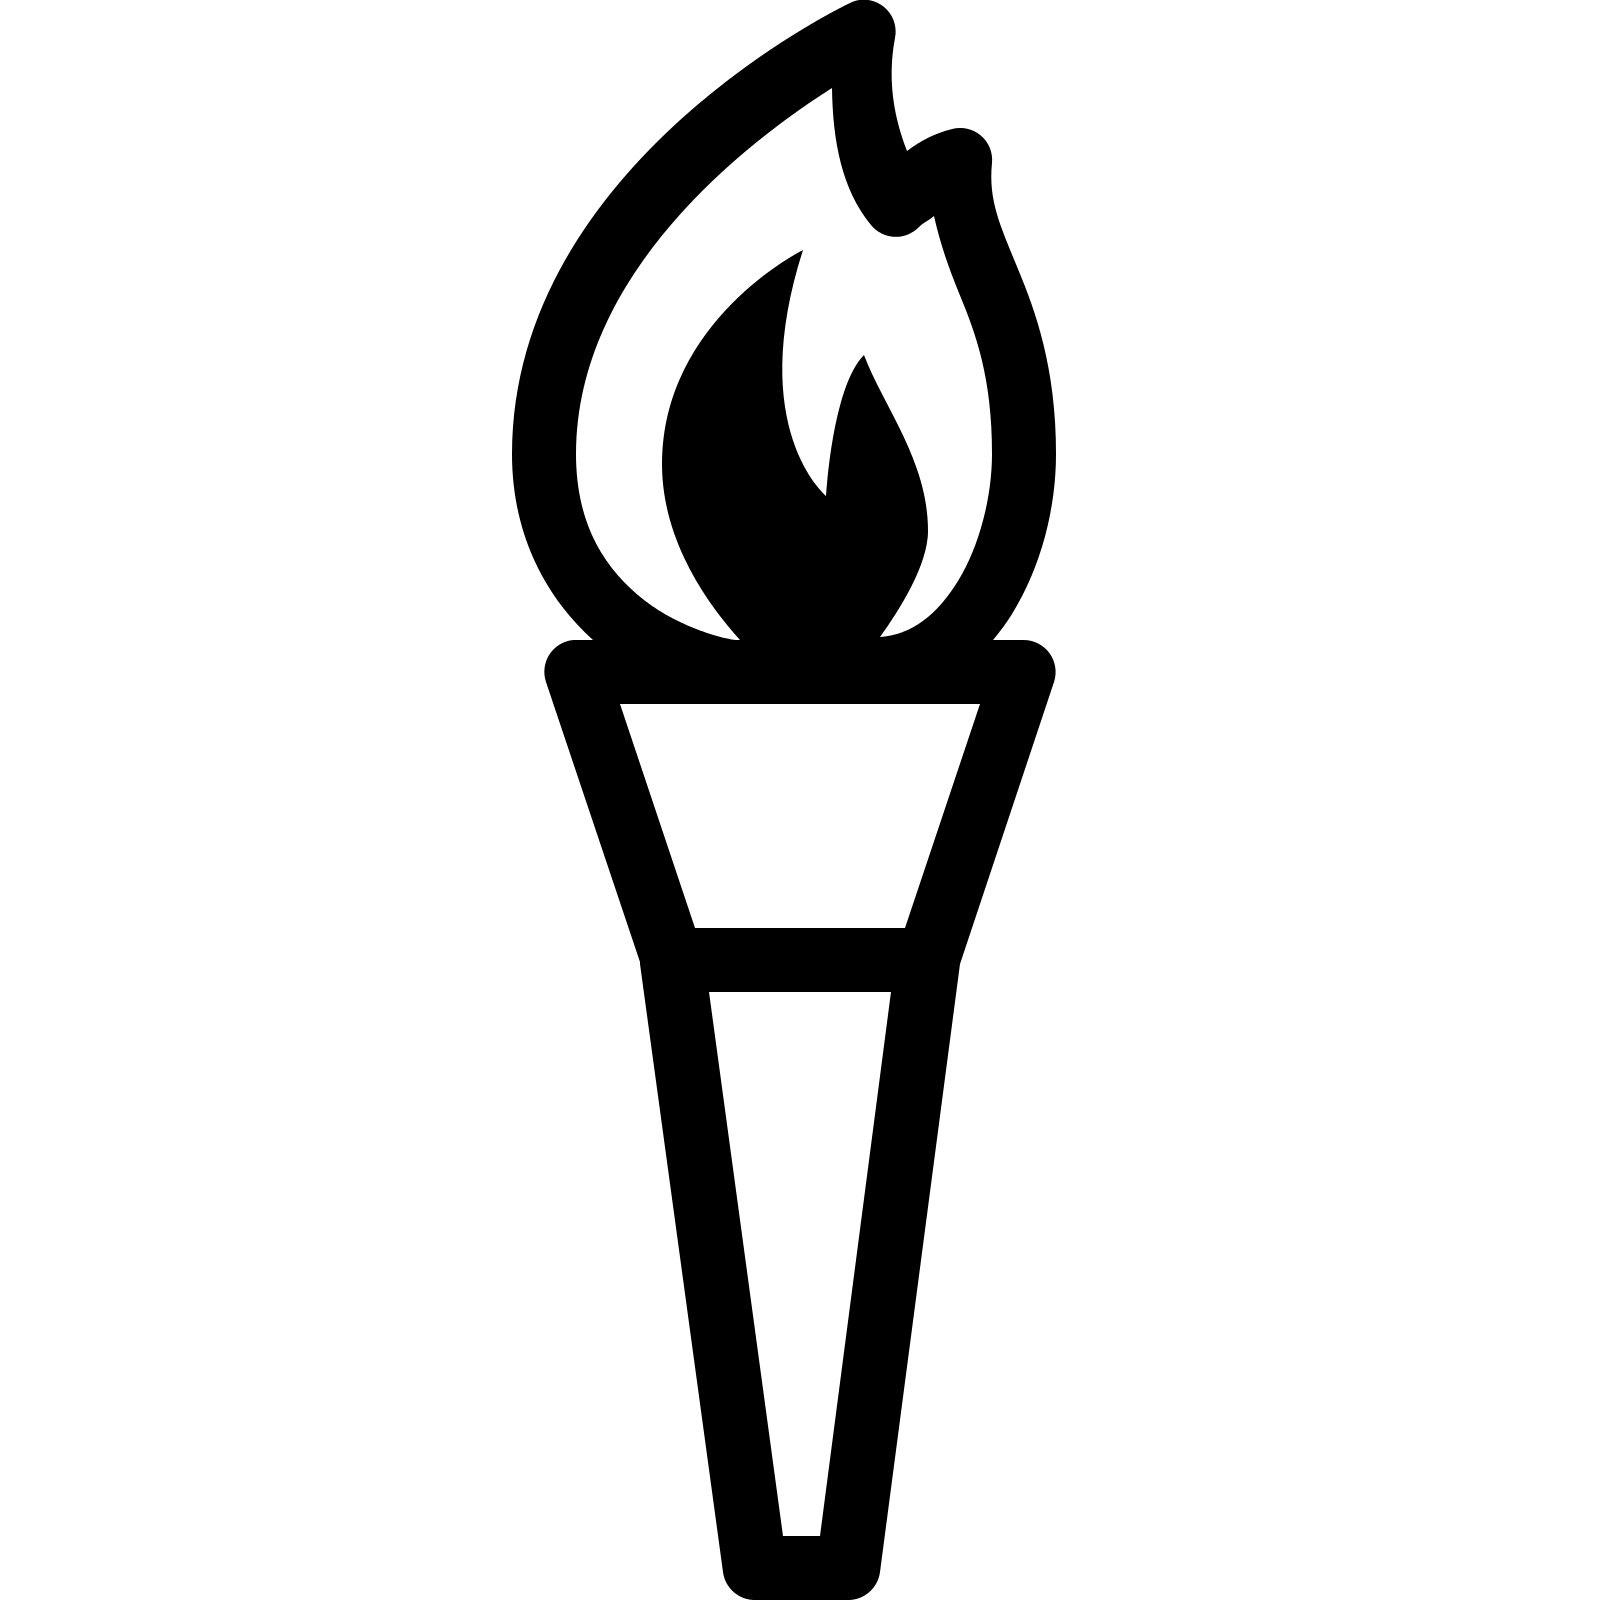 Torch clipart torch book.  beauty olympic games